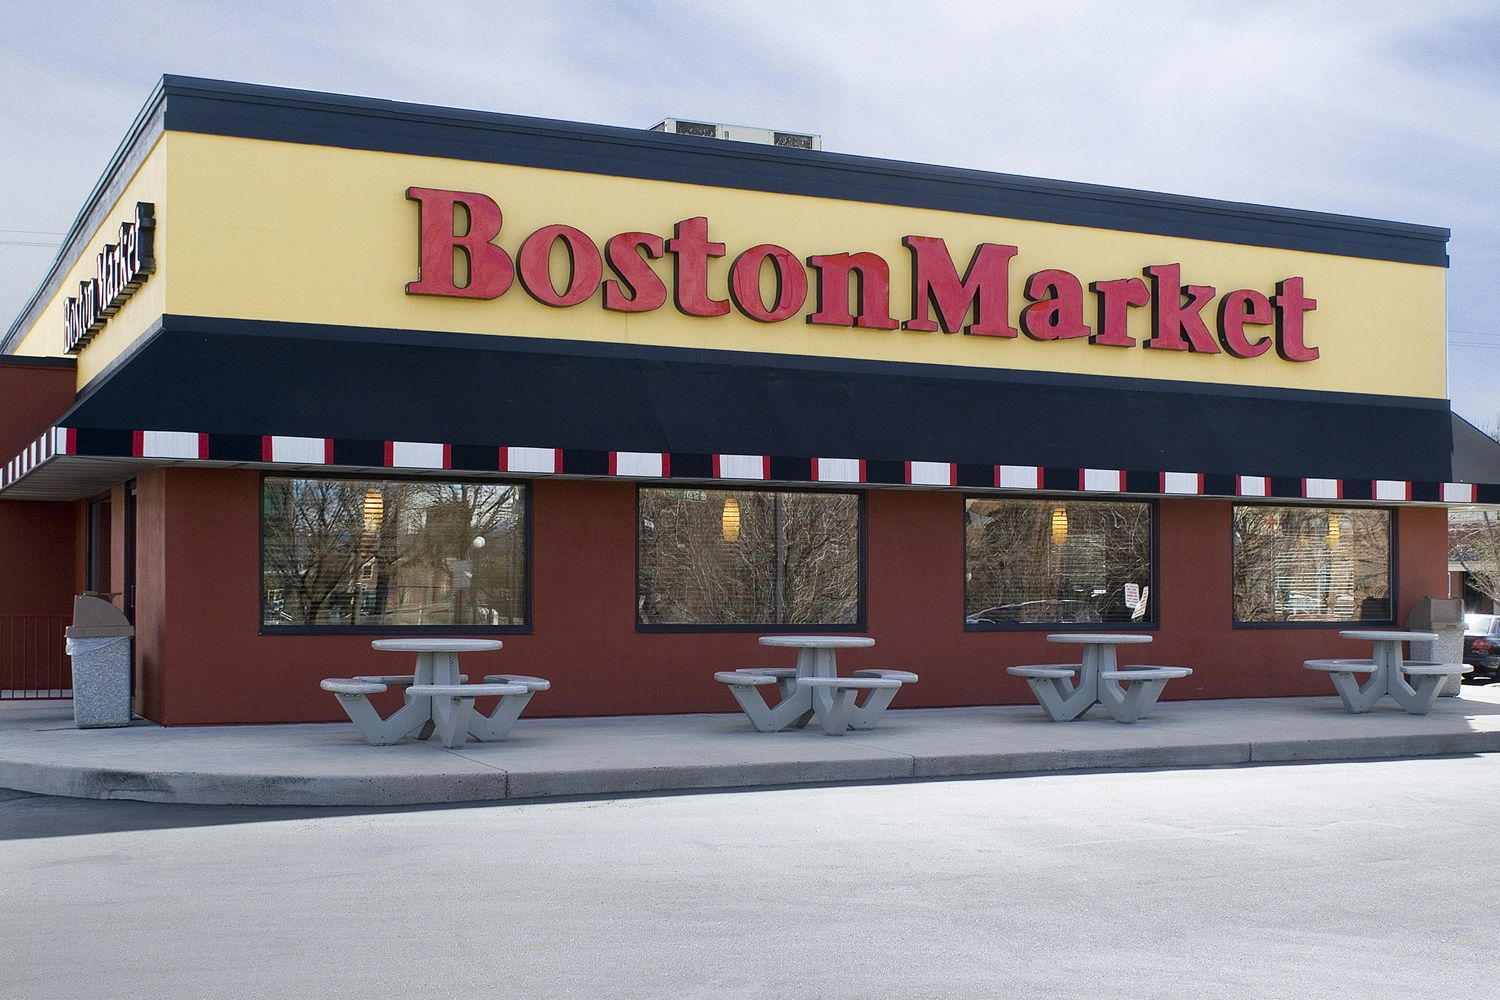 Boston Market Application Online: Jobs & Career Info